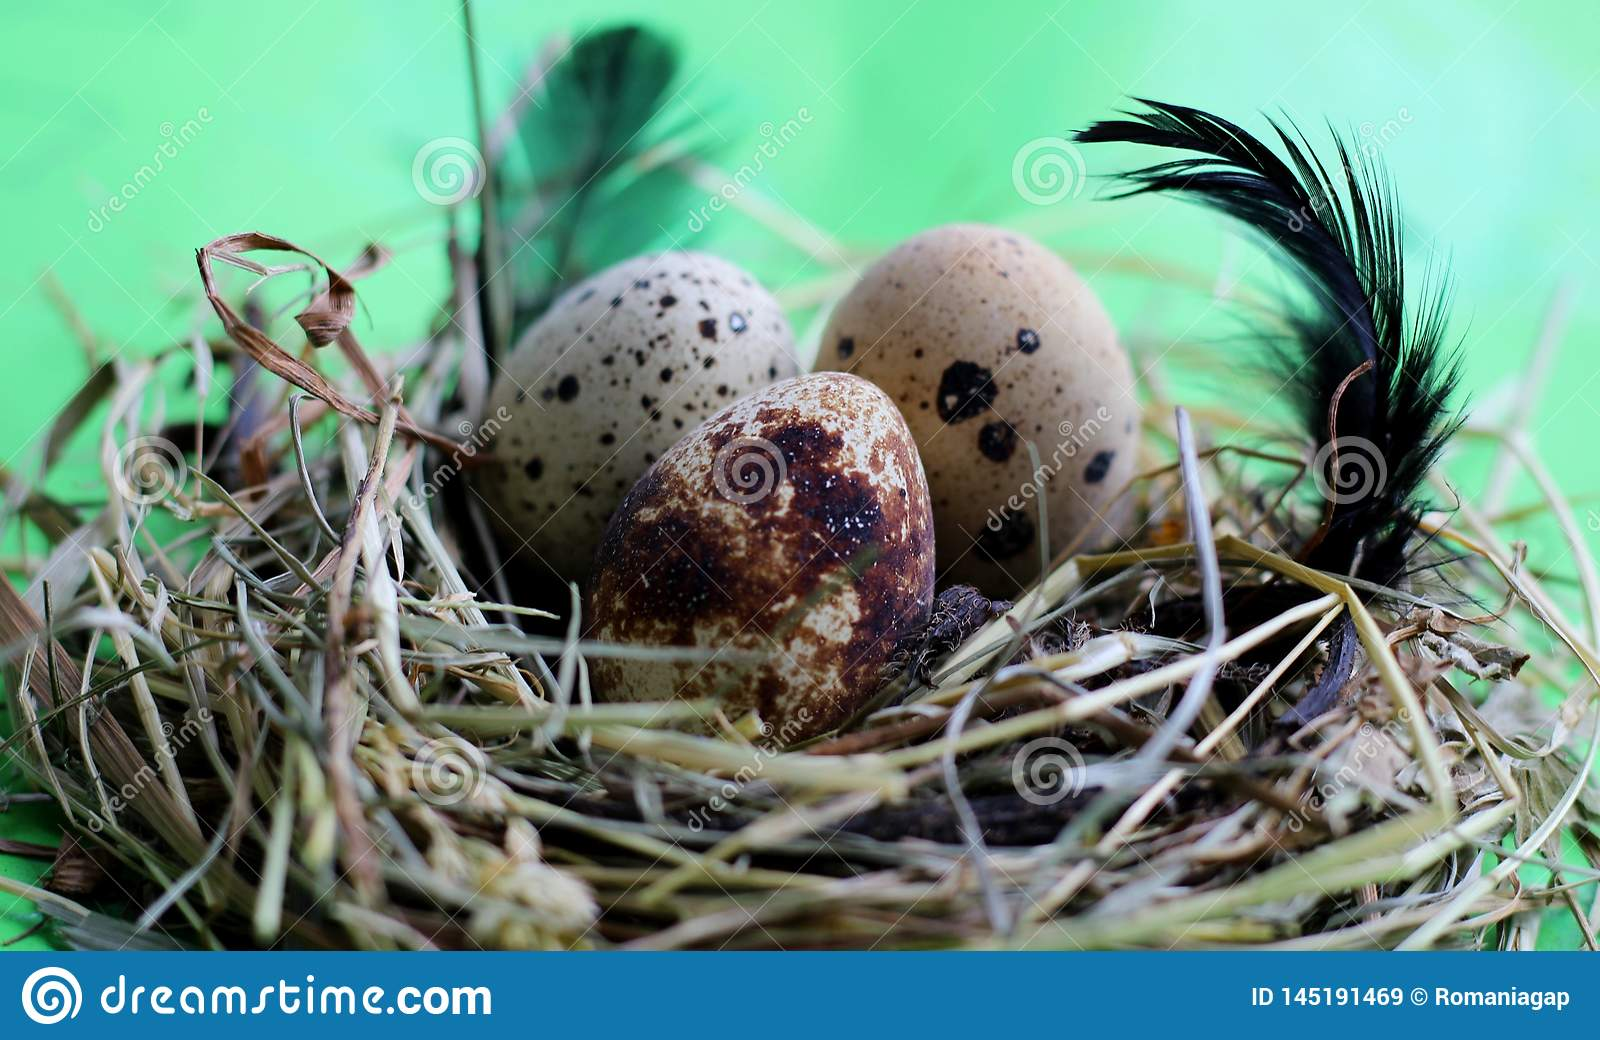 Nest with quail eggs and feathers on light green background